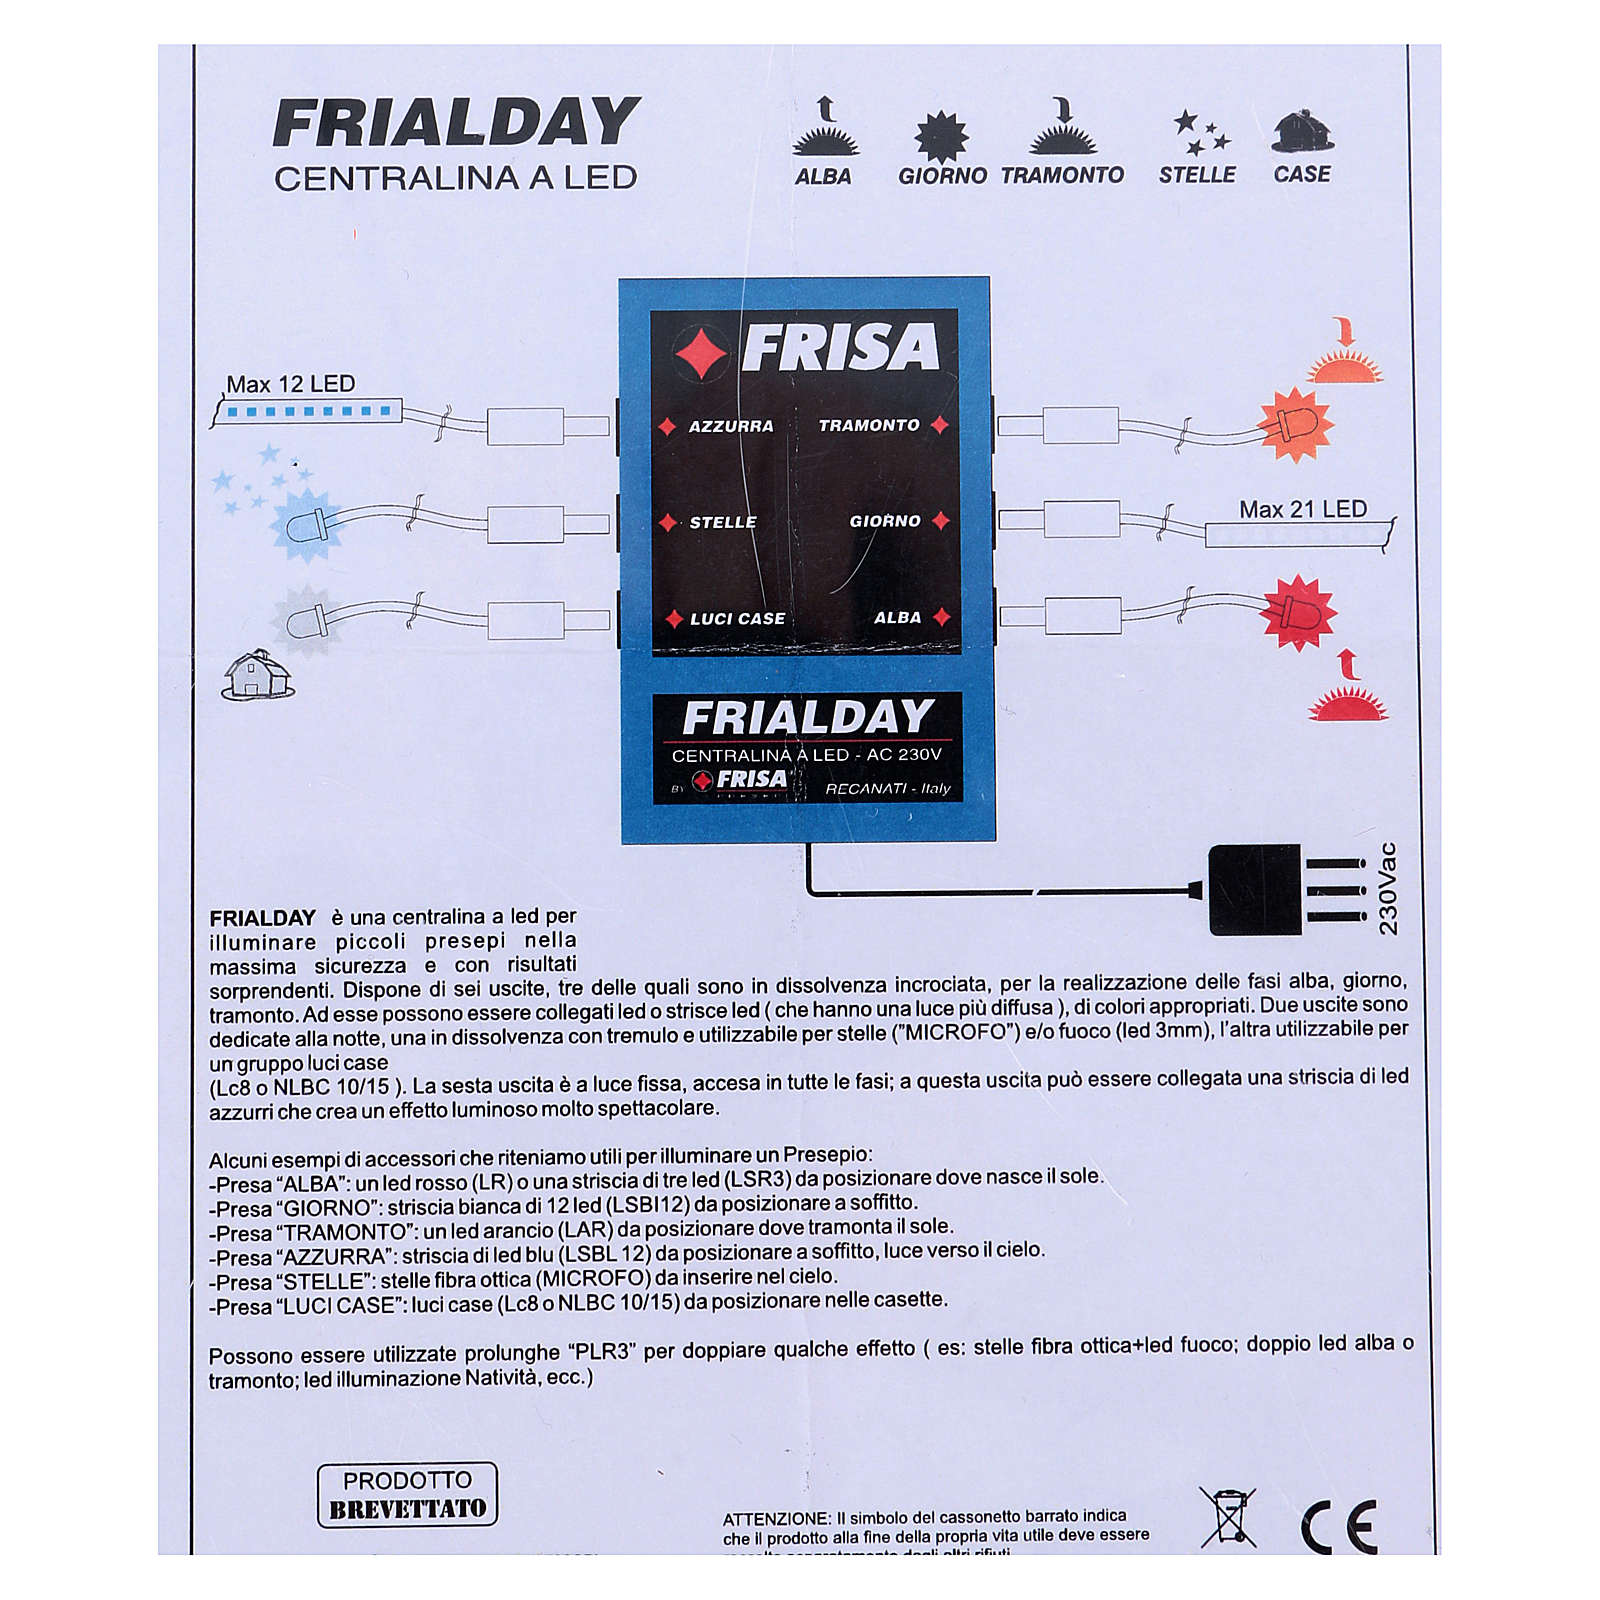 Frialday (Frisalight): electric box 4